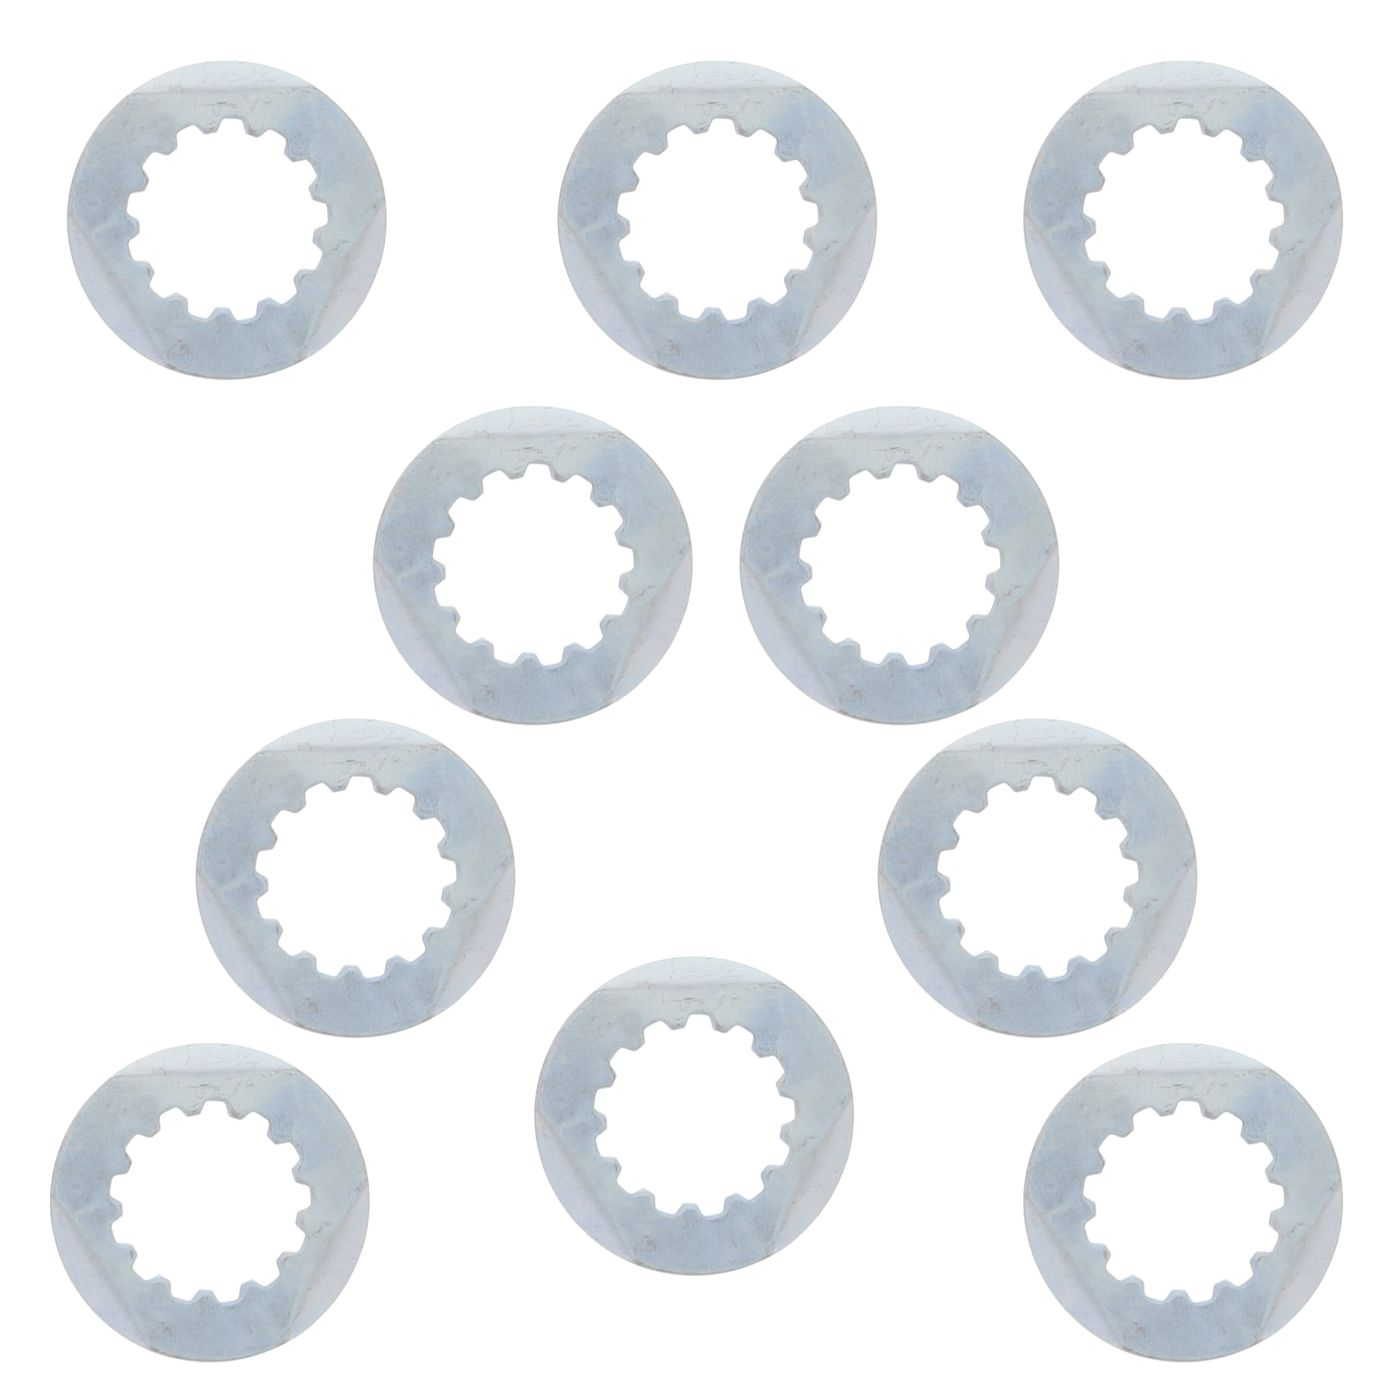 Wrp Front Sprocket Retainers - WRP256006 image